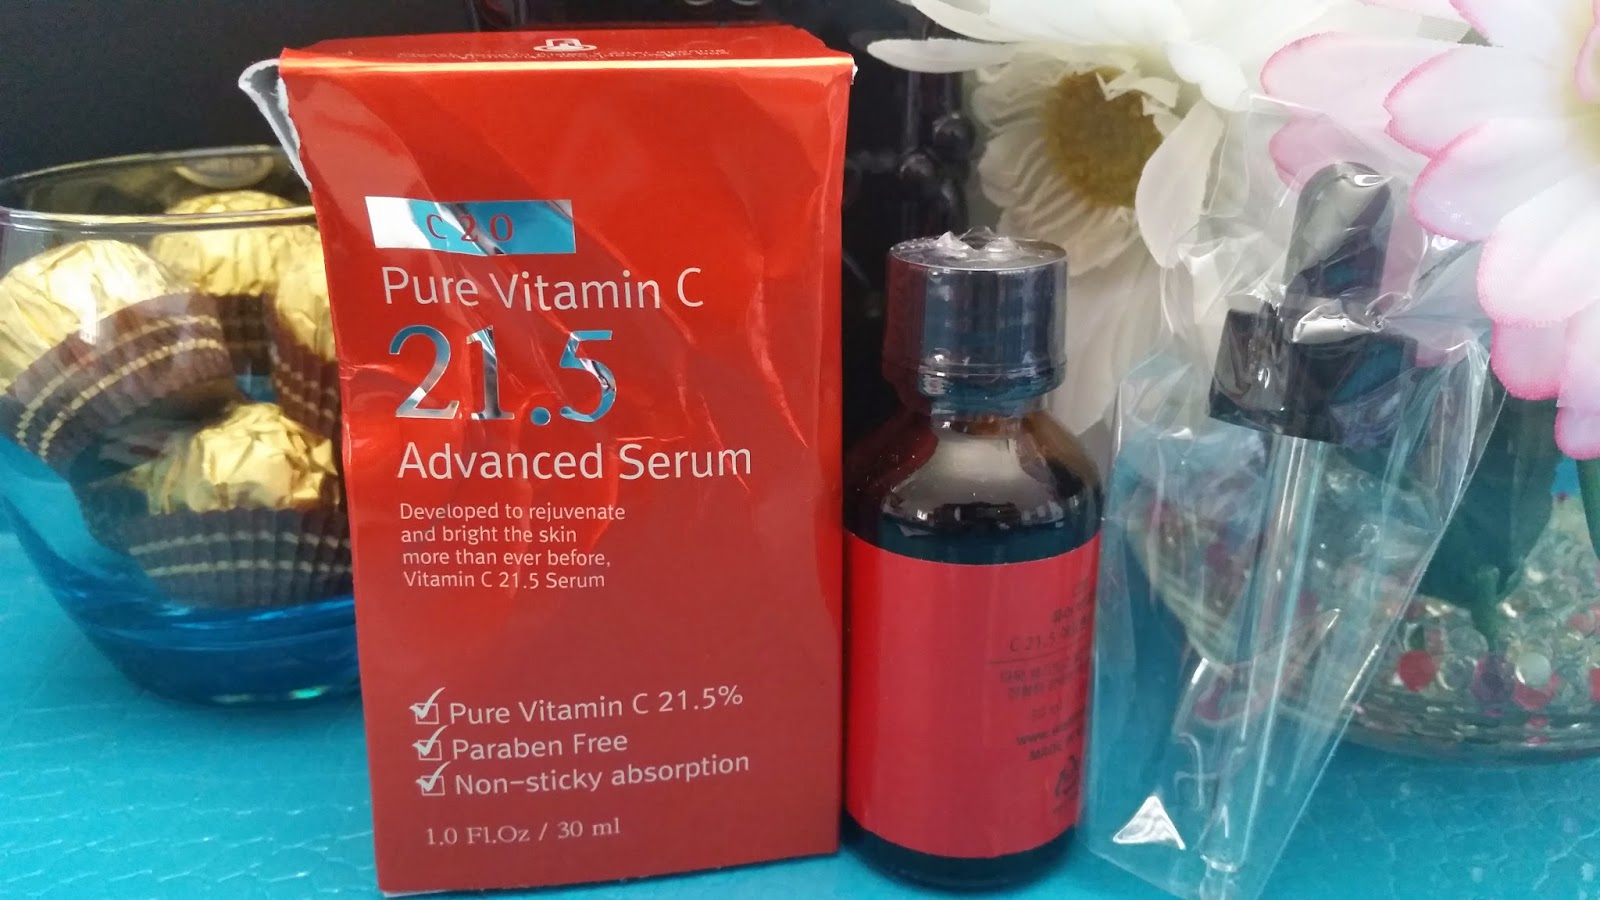 C20 Pure Vitamin C21.5 Advanced Serum